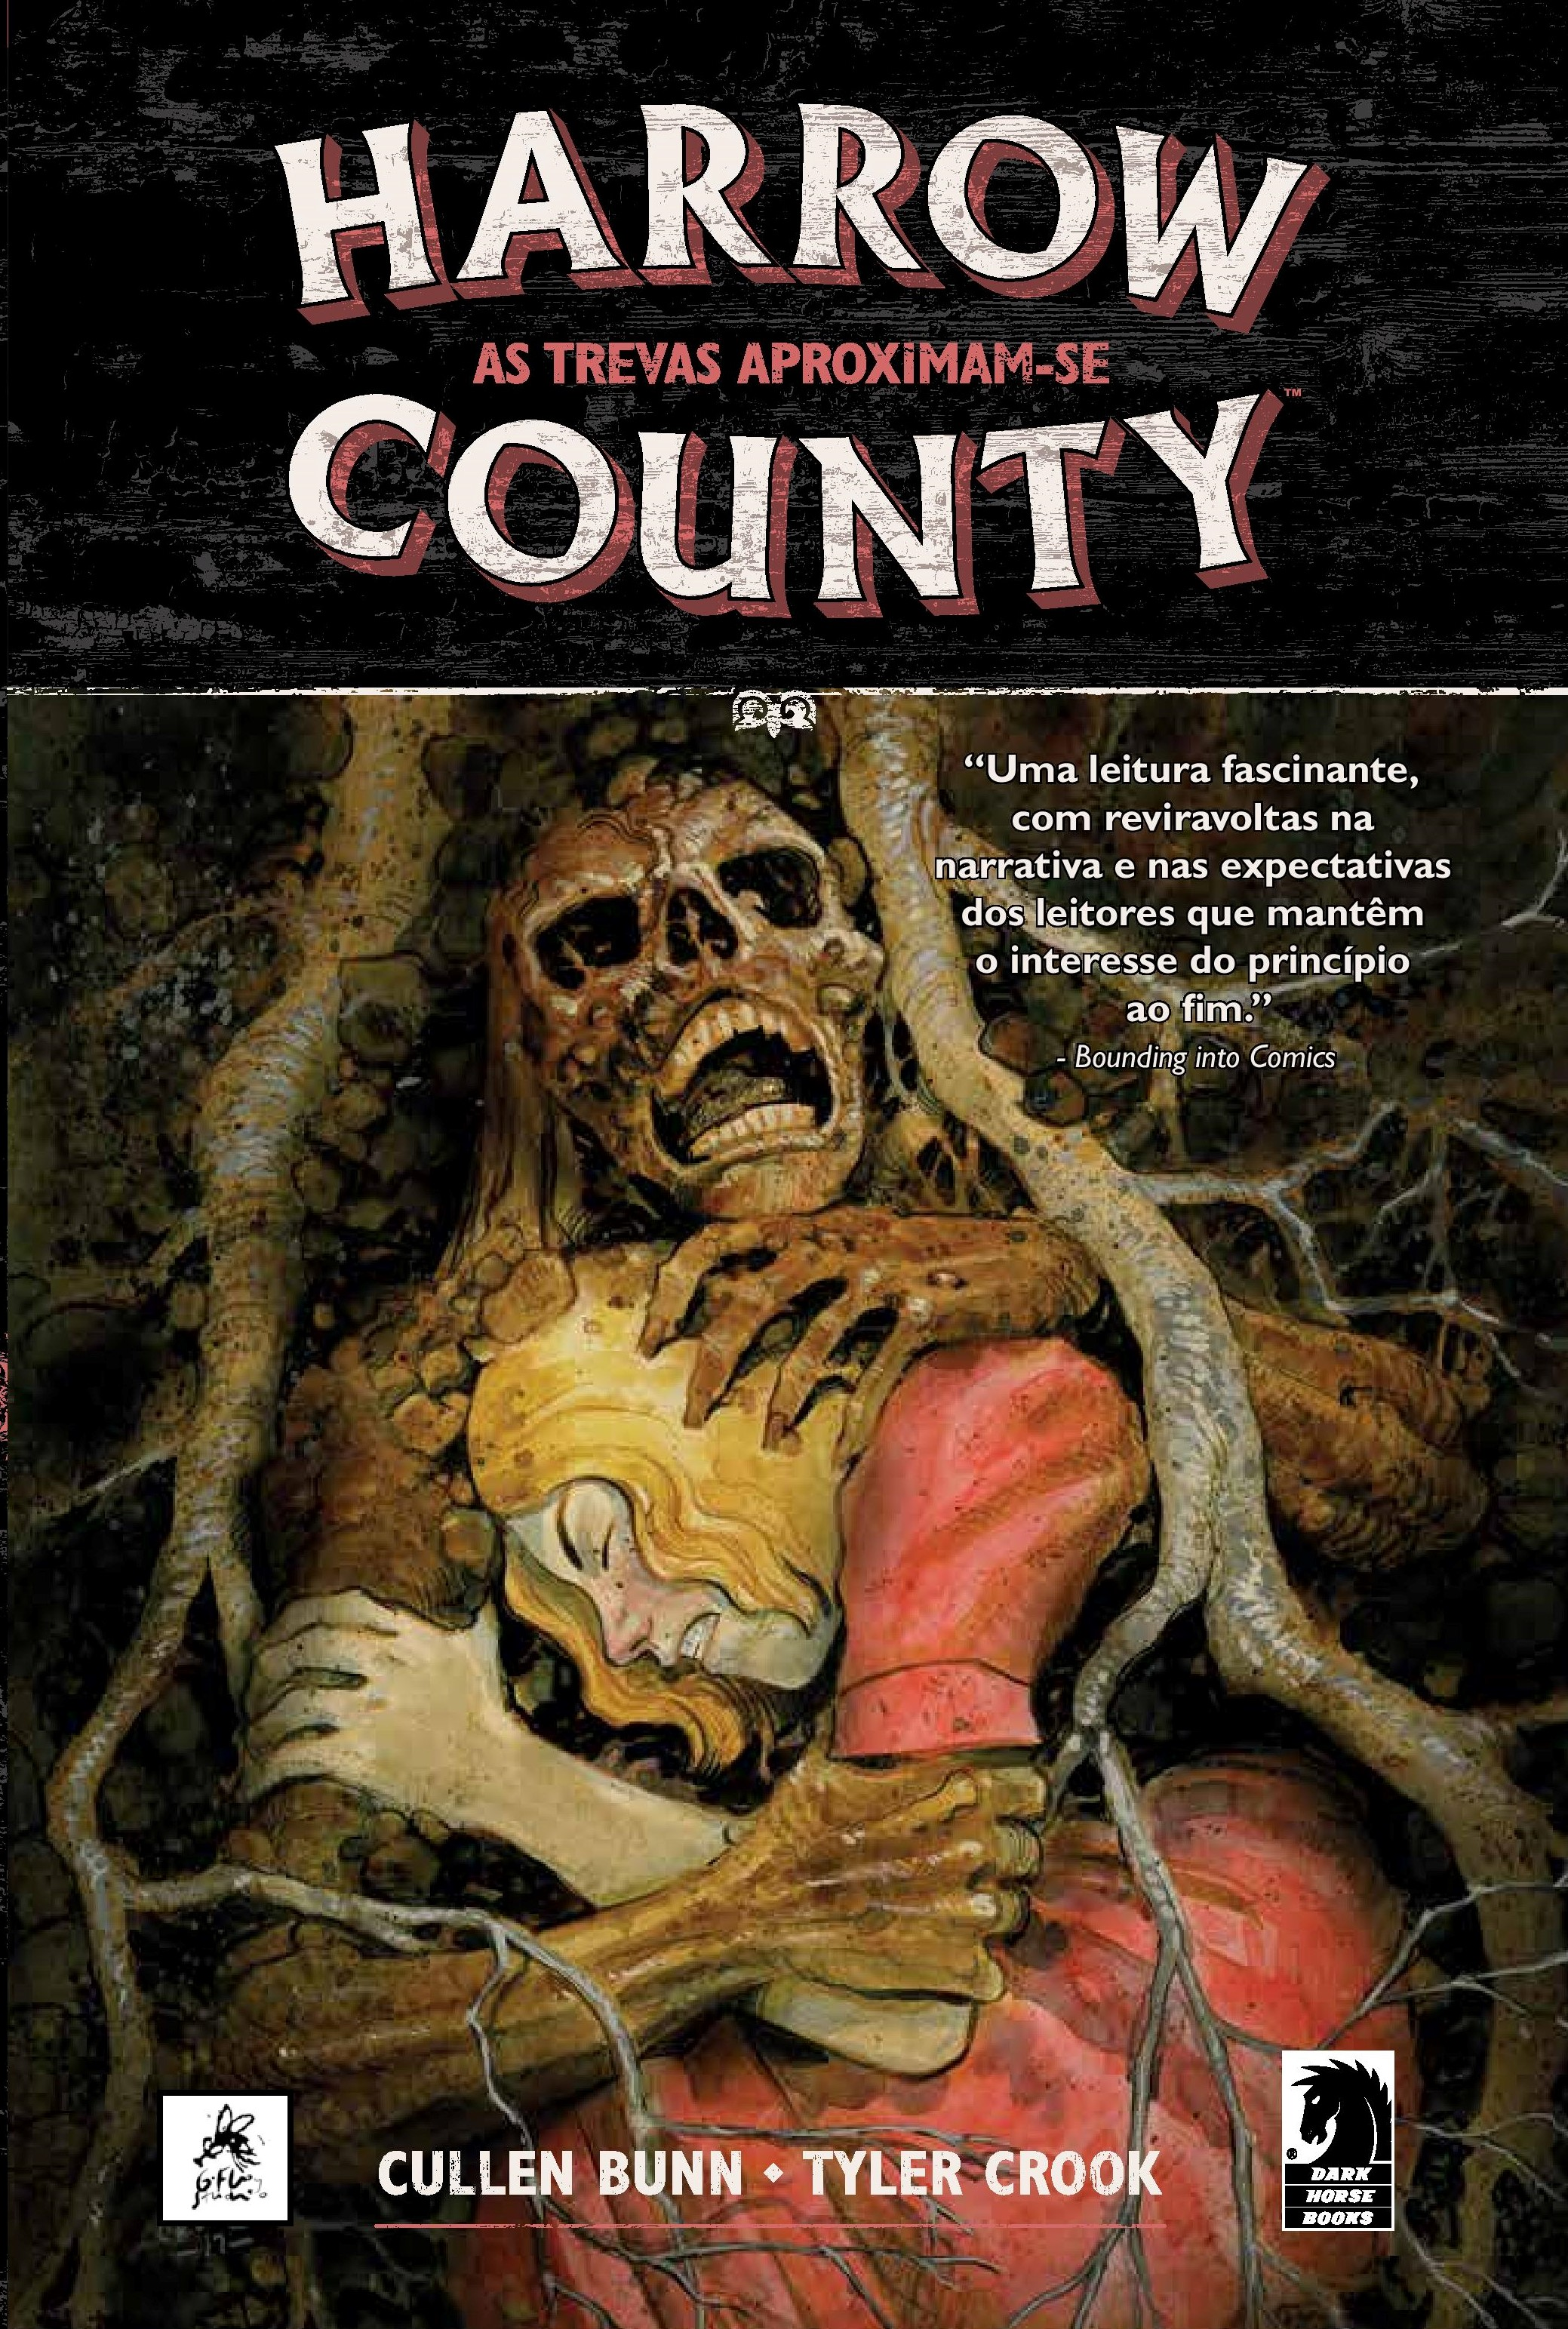 HARROW COUNTY volume 7: As Trevas Aproximam-se